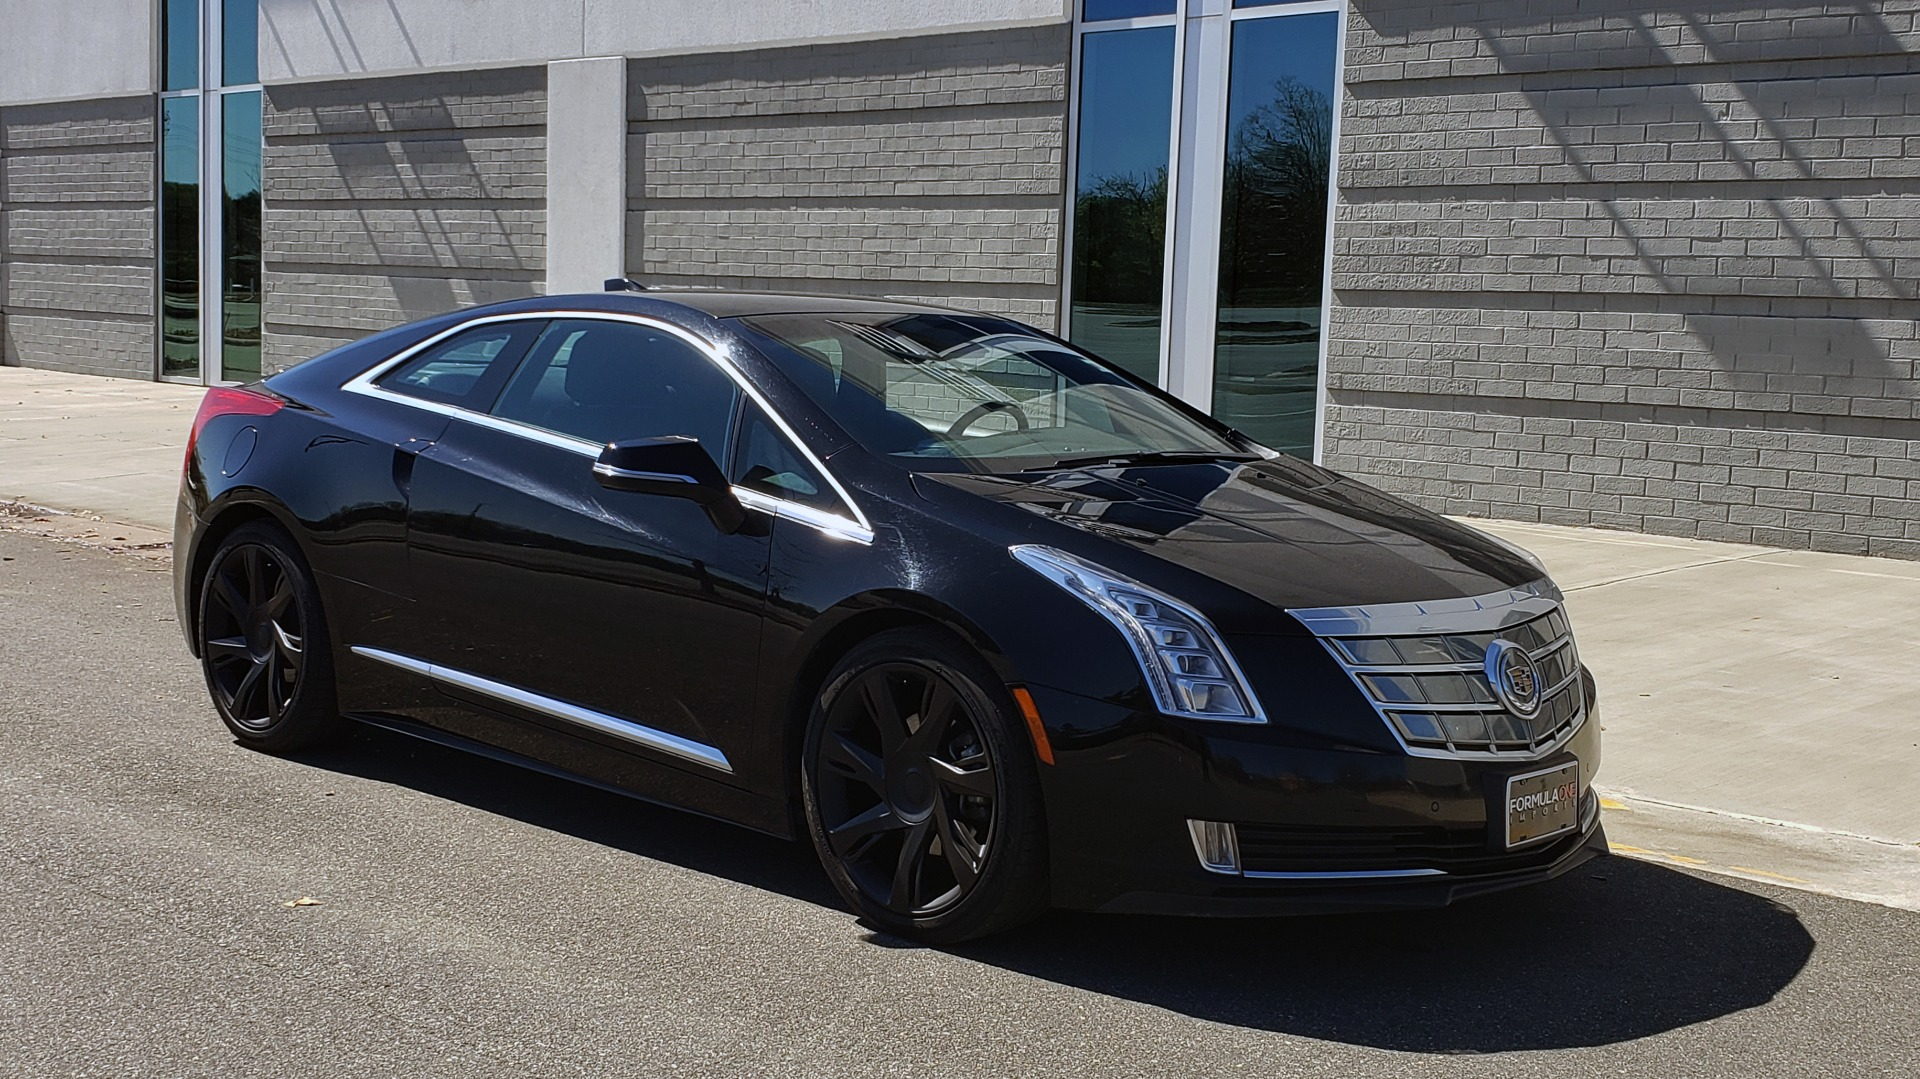 Used 2014 Cadillac ELR 2DR COUPE / HYBRID / NAV / BOSE / HEATED SEATS / REARVIEW for sale $19,995 at Formula Imports in Charlotte NC 28227 5